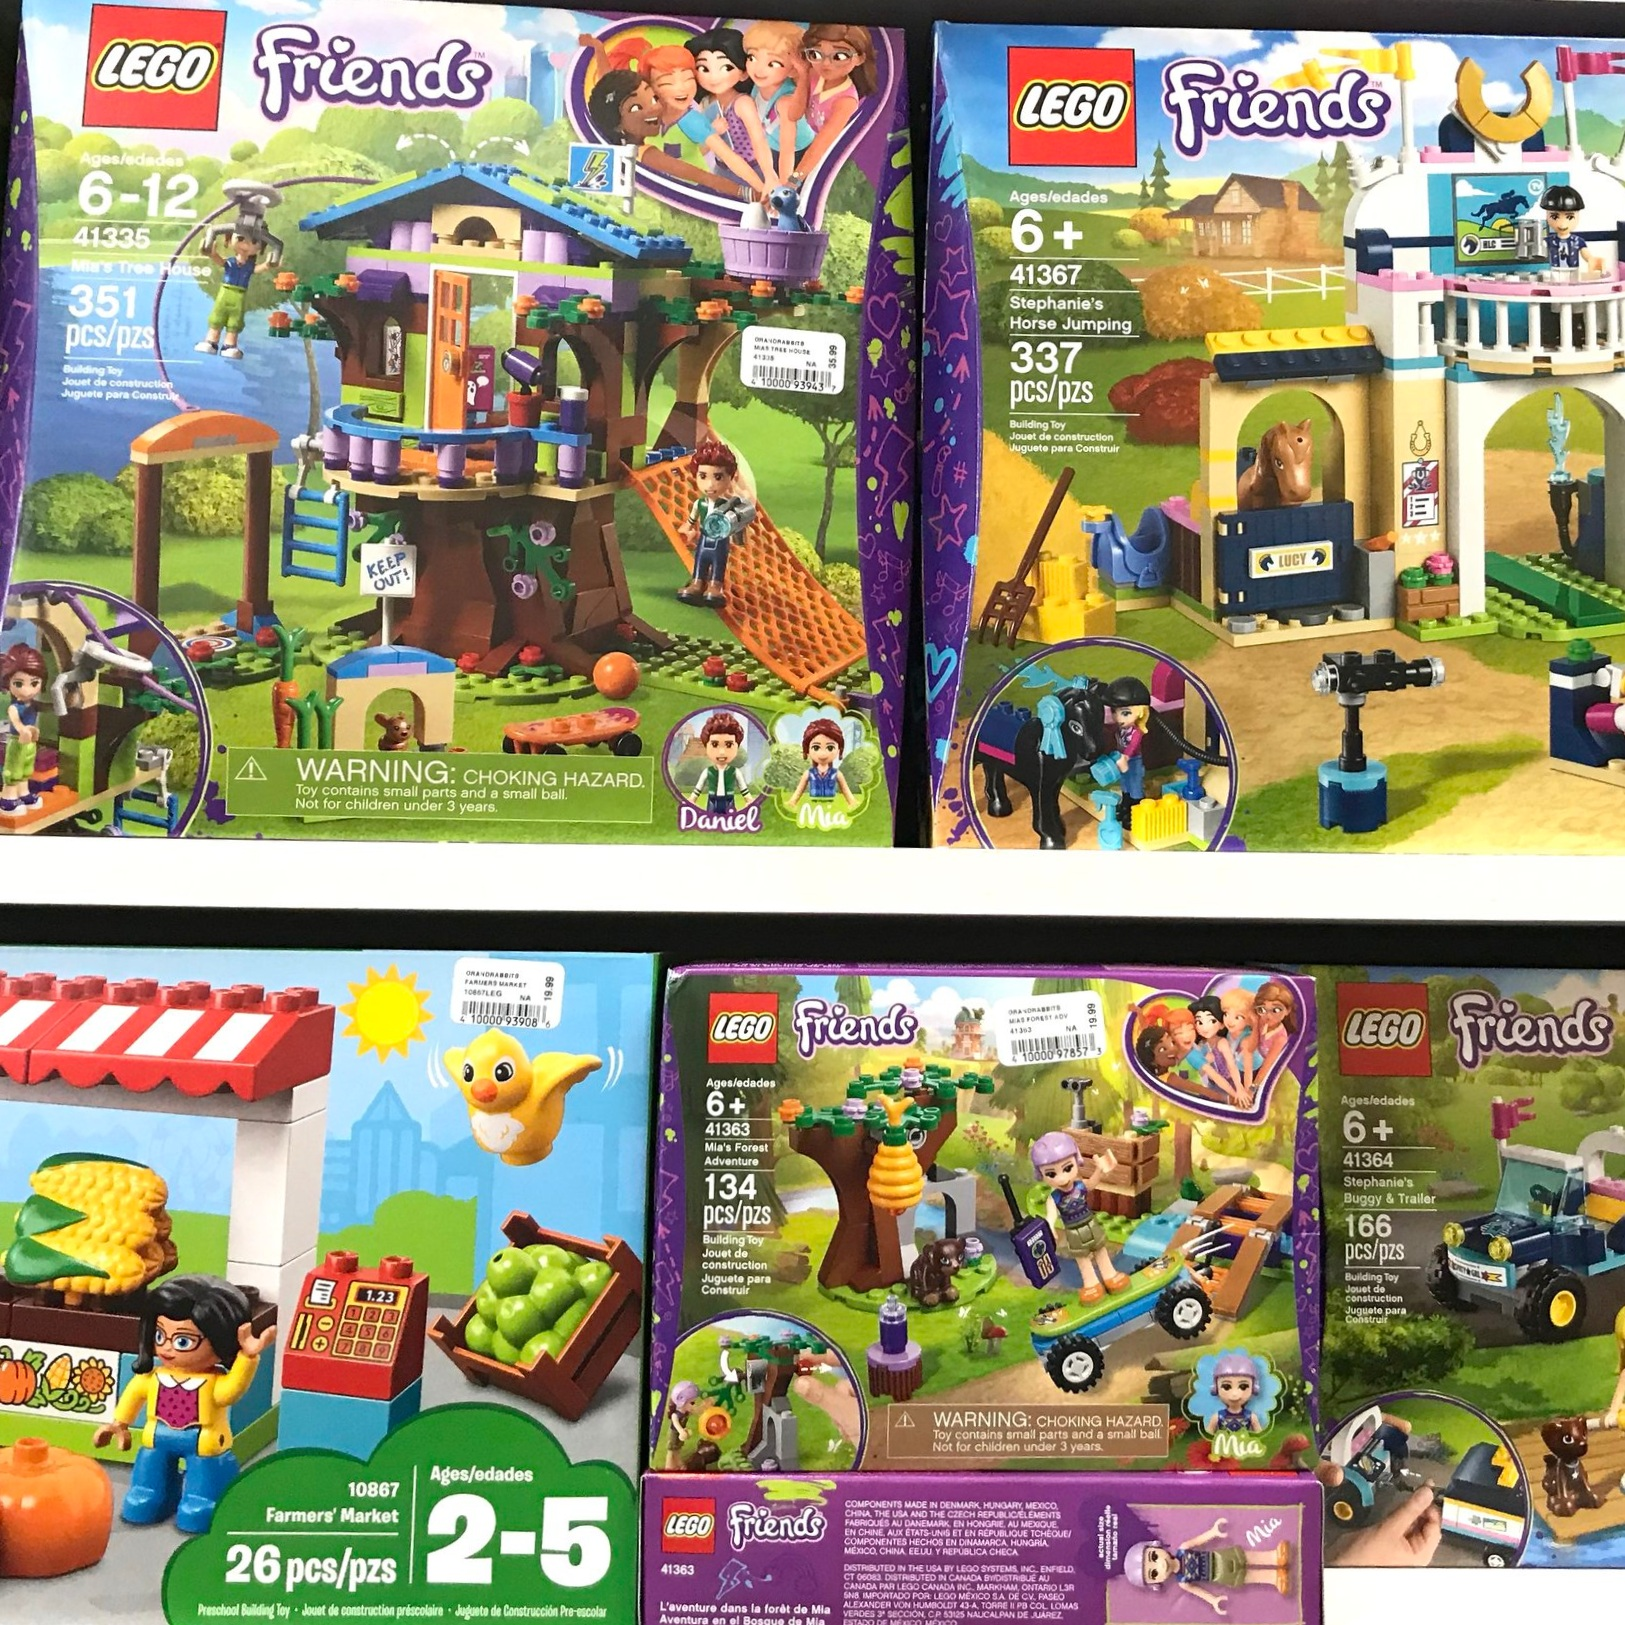 Today Lego's Friends line is marketed toward girls and features strangely skinny figures — not their standard minifigs — with sets that conform to more feminine stereotypes.